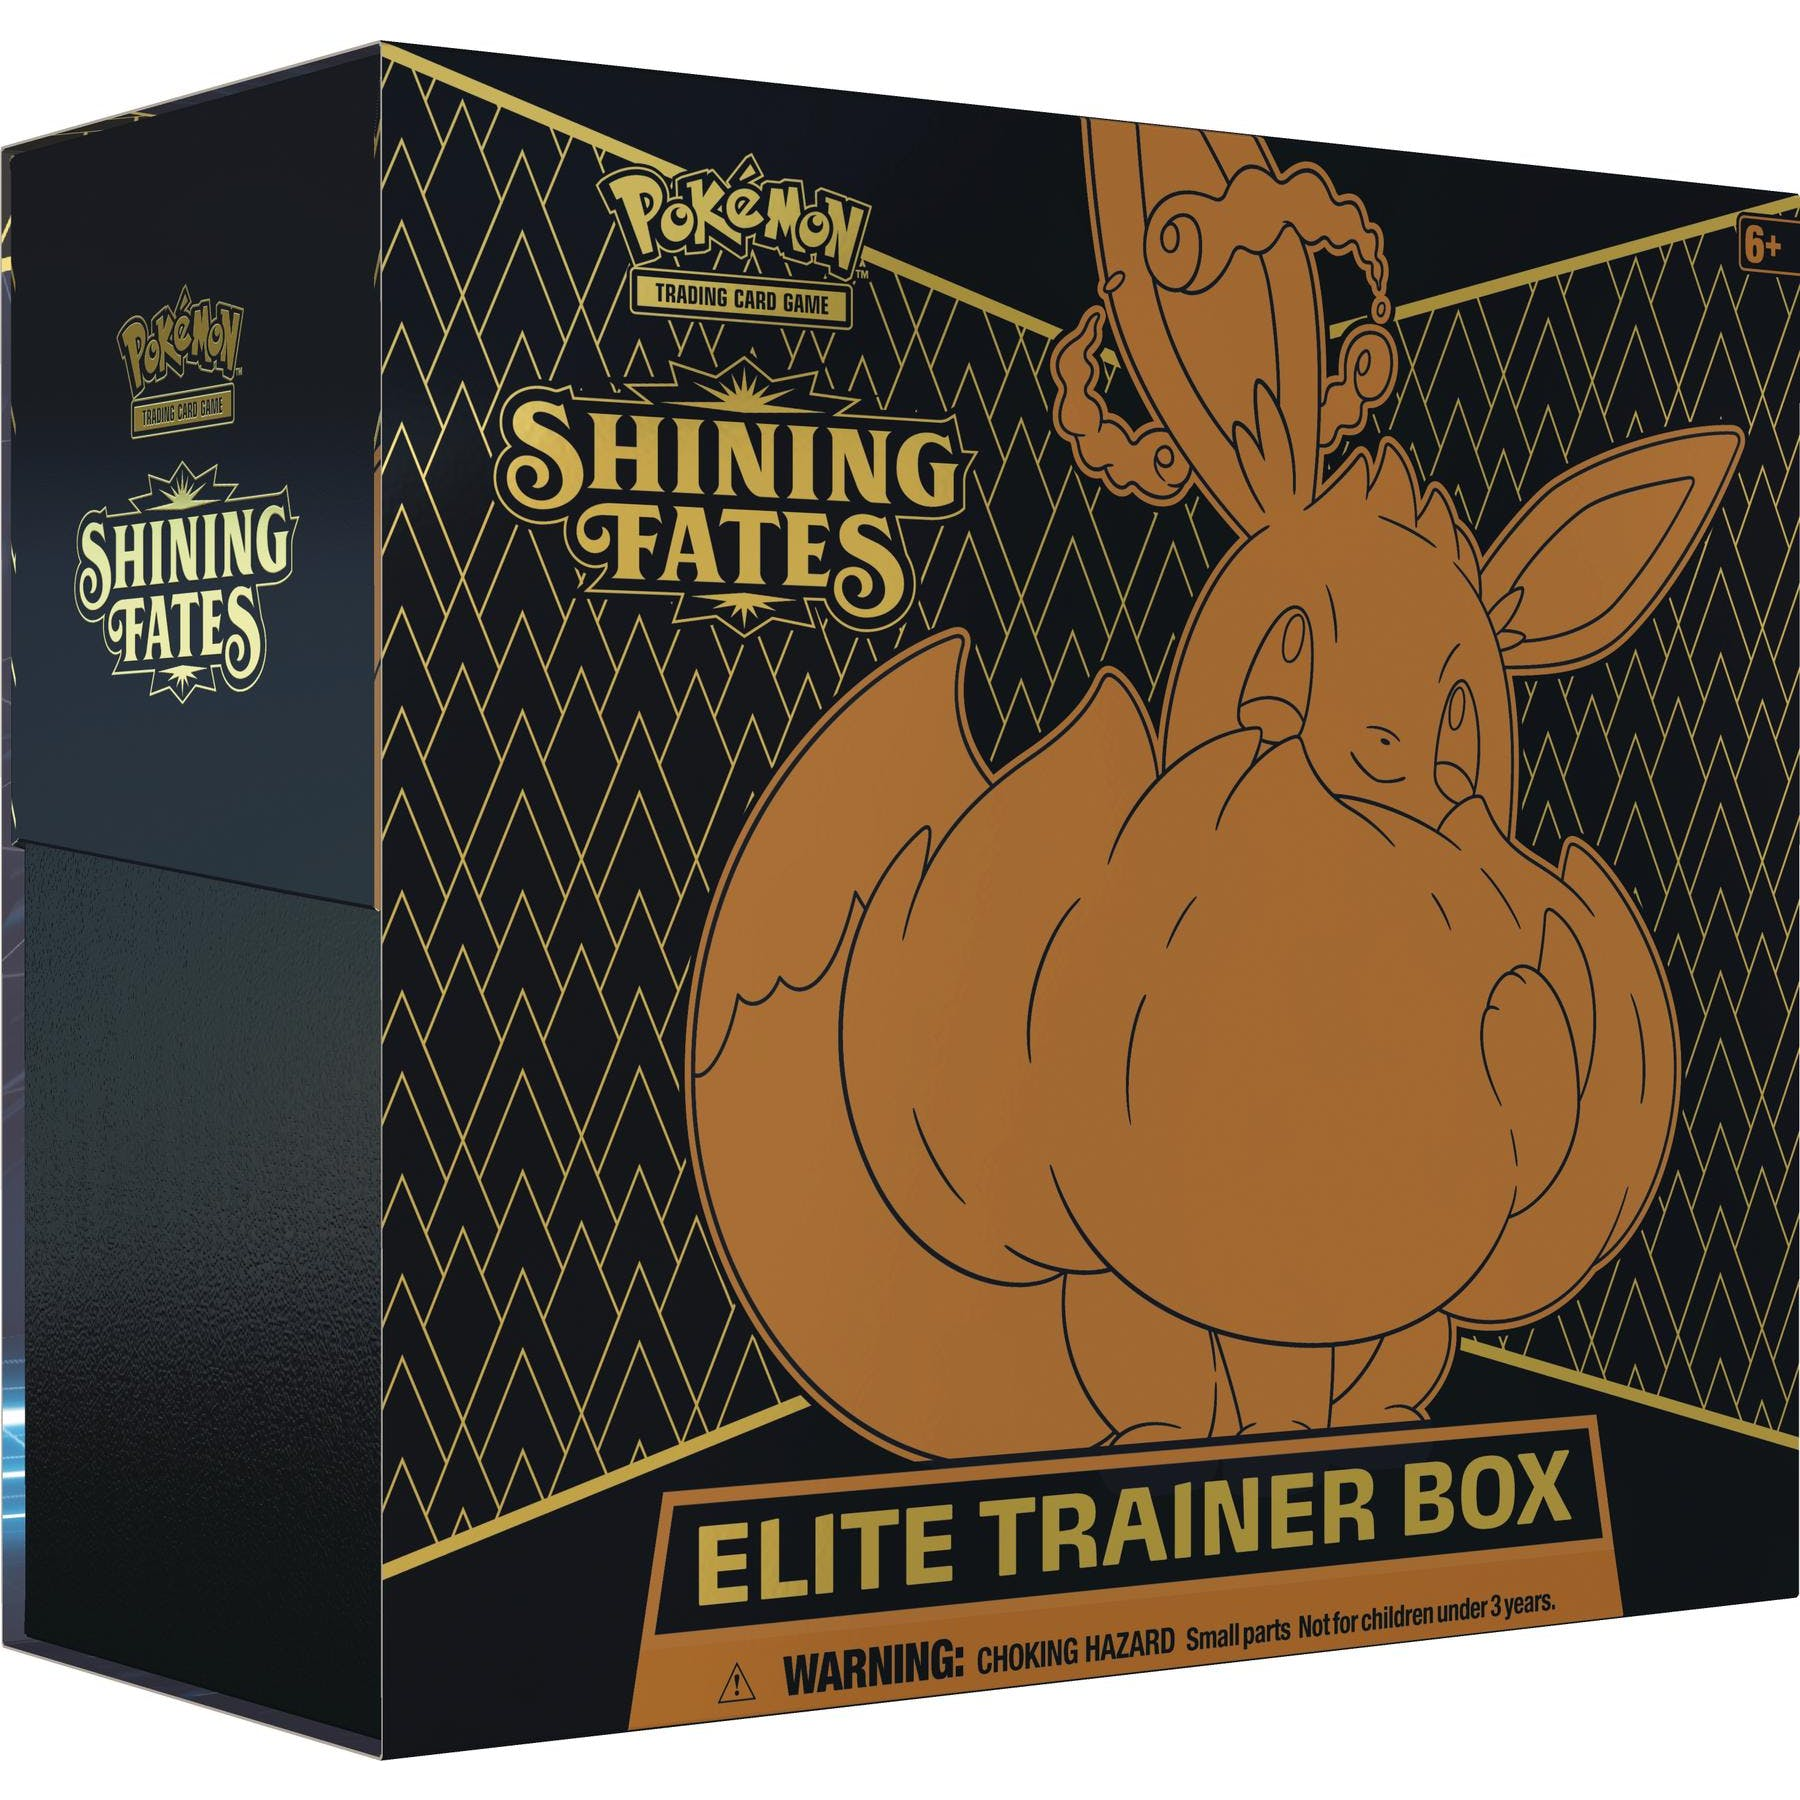 Shinning Fates Elite Trainer Box | Multizone: Comics And Games